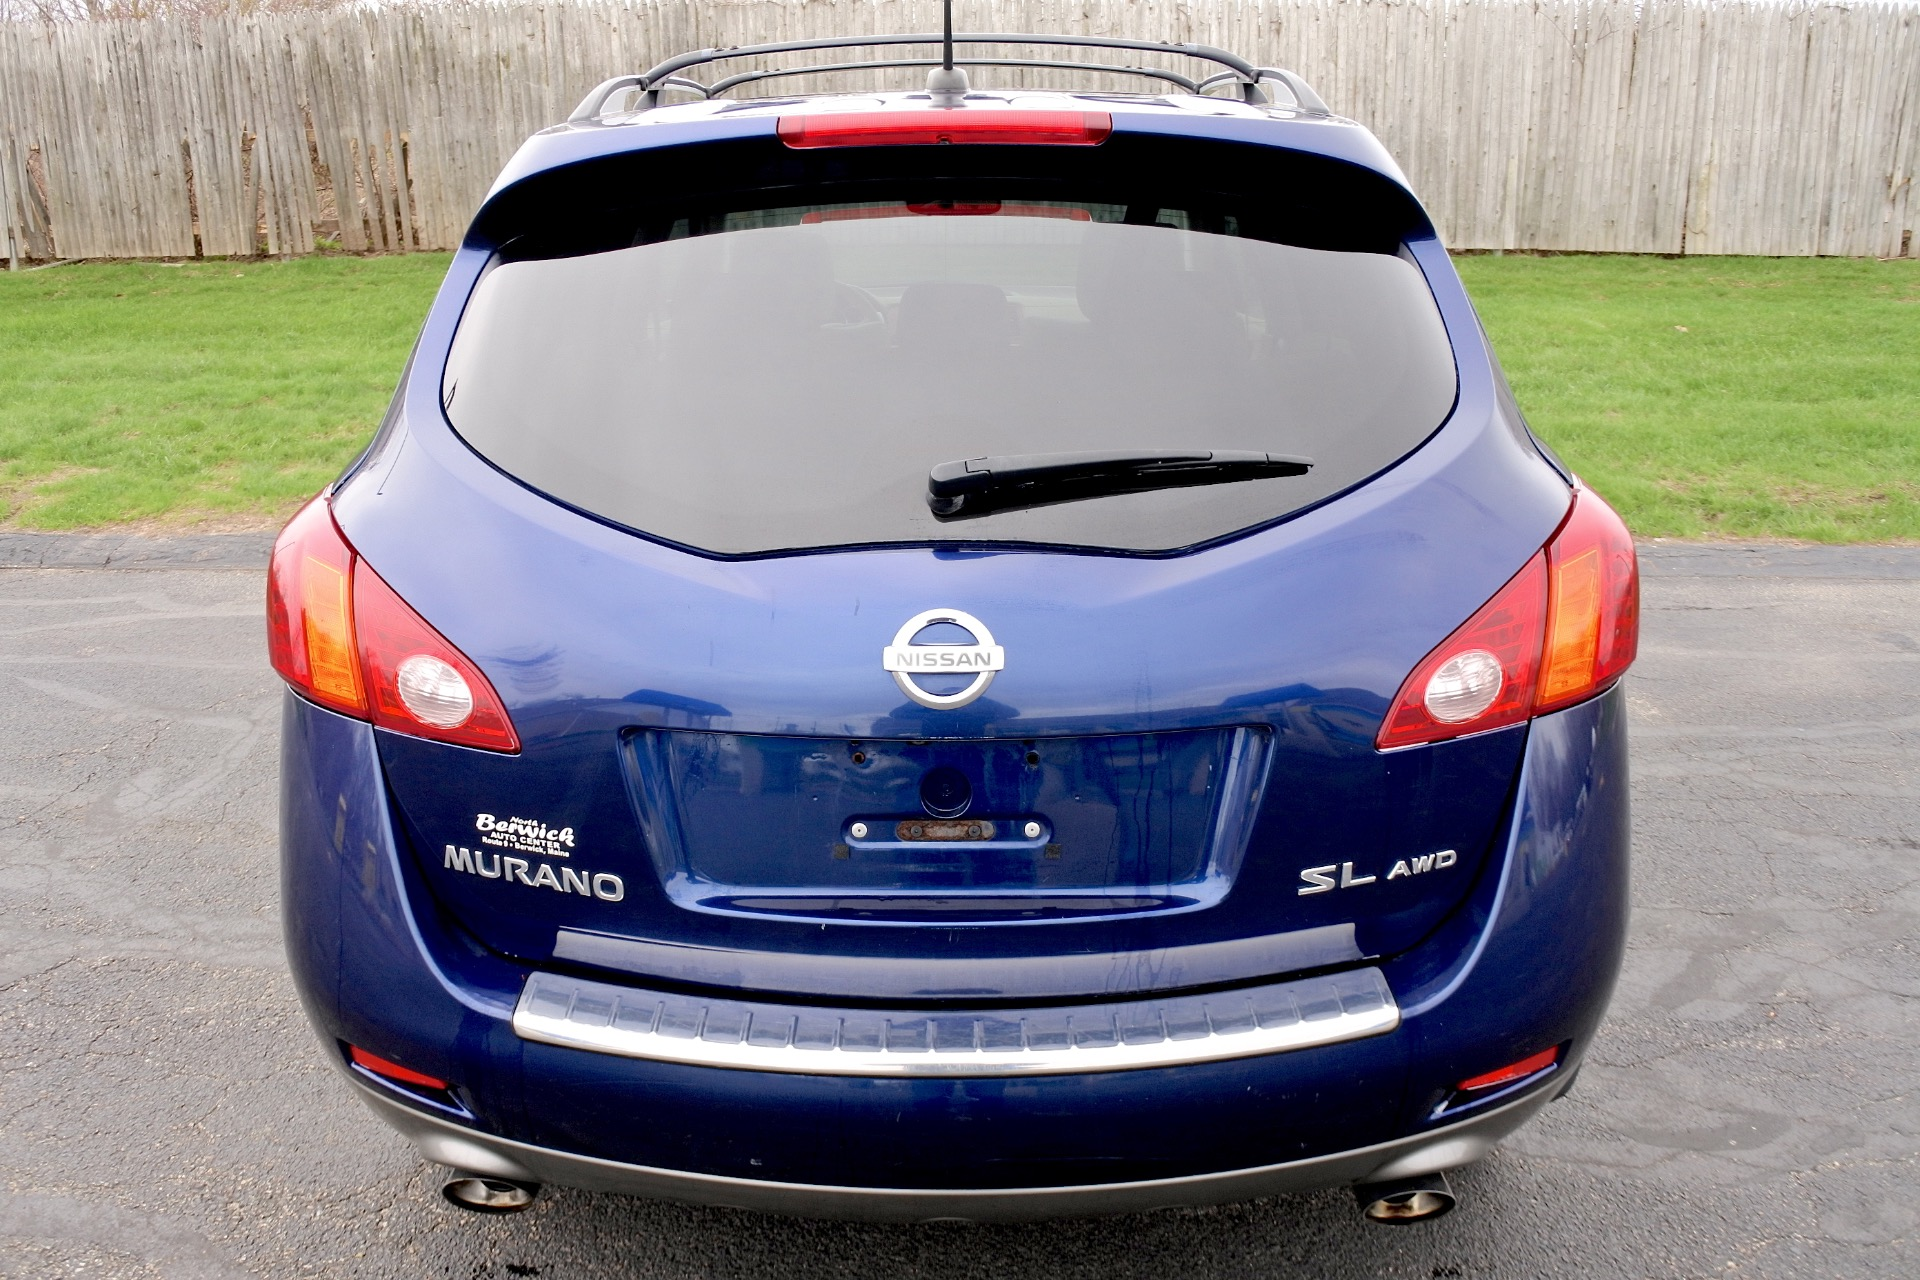 Used 2010 Nissan Murano AWD 4dr SL Used 2010 Nissan Murano AWD 4dr SL for sale  at Metro West Motorcars LLC in Shrewsbury MA 4